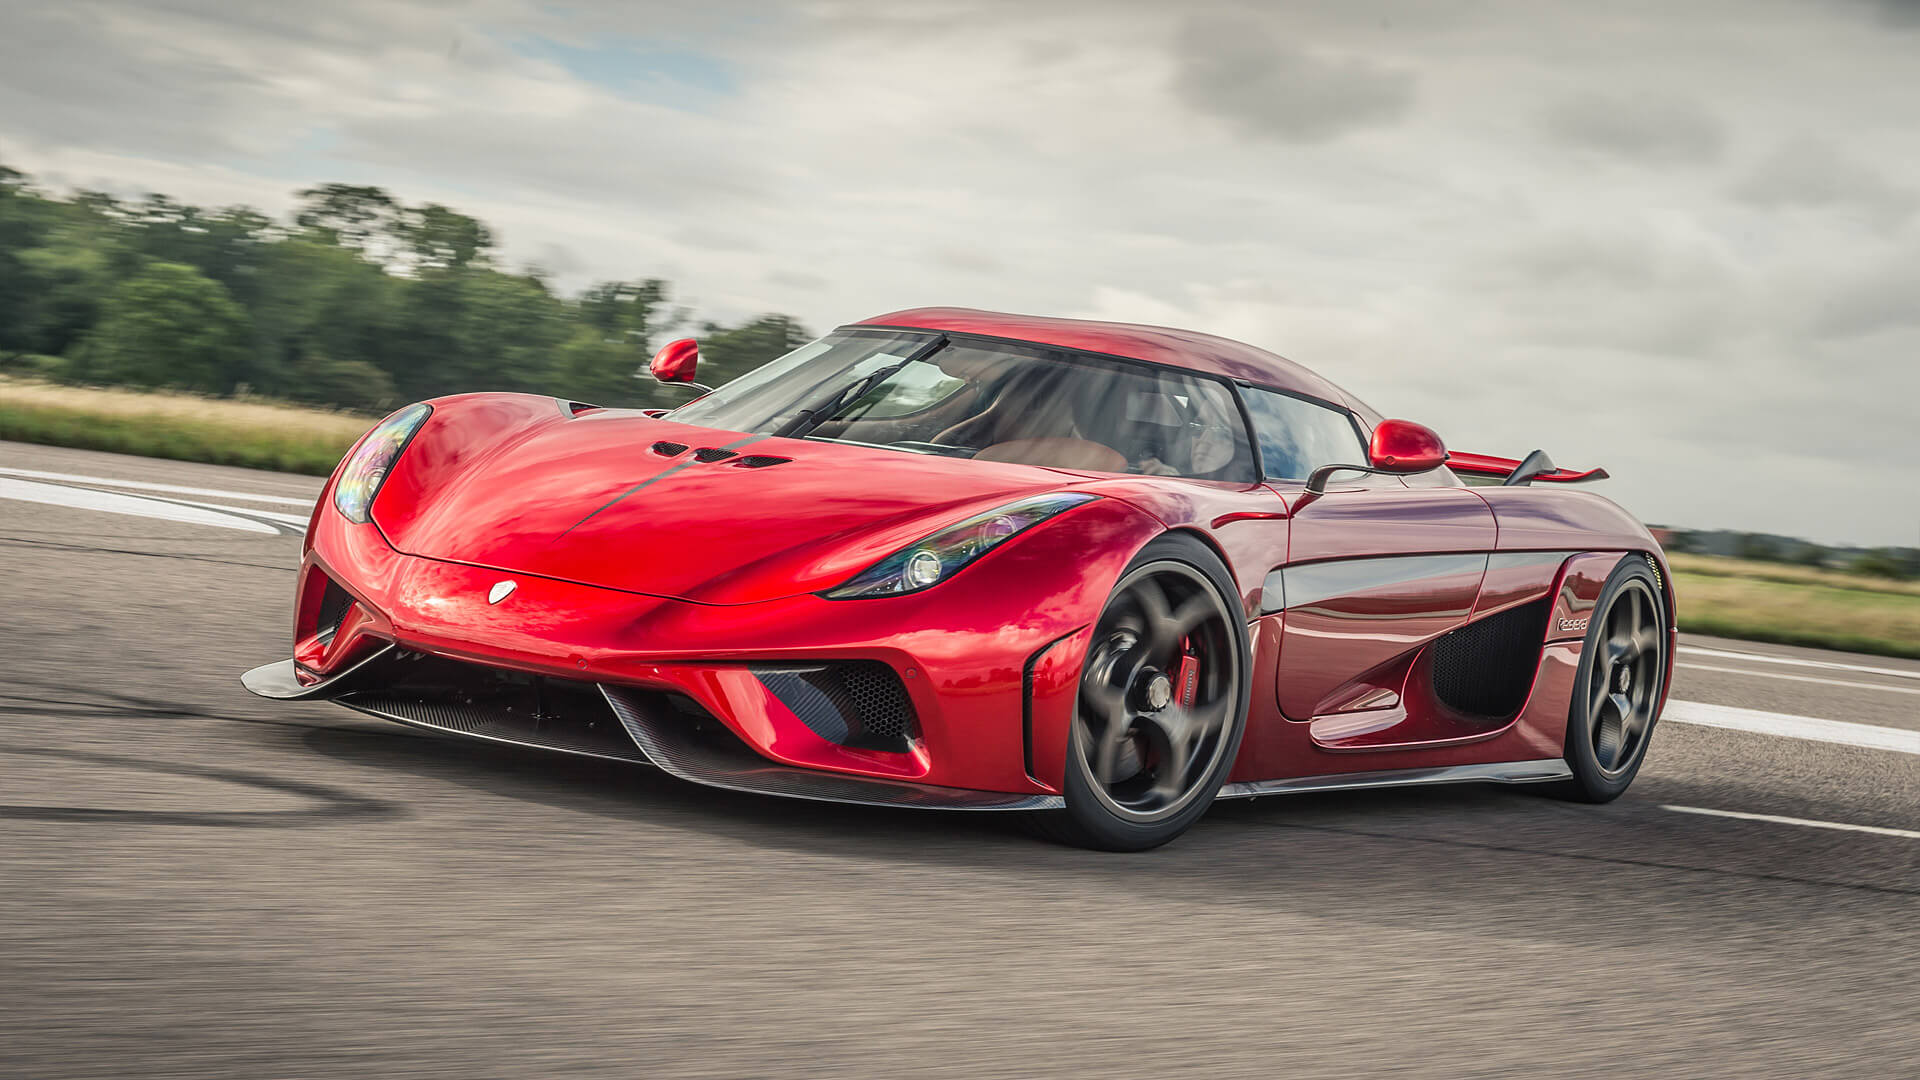 Following all the pre-sale QA procedures can be repetitive and boring, but things become decidedly more exhilarating when you deal with a hypercar like the Koenigsegg Regera.